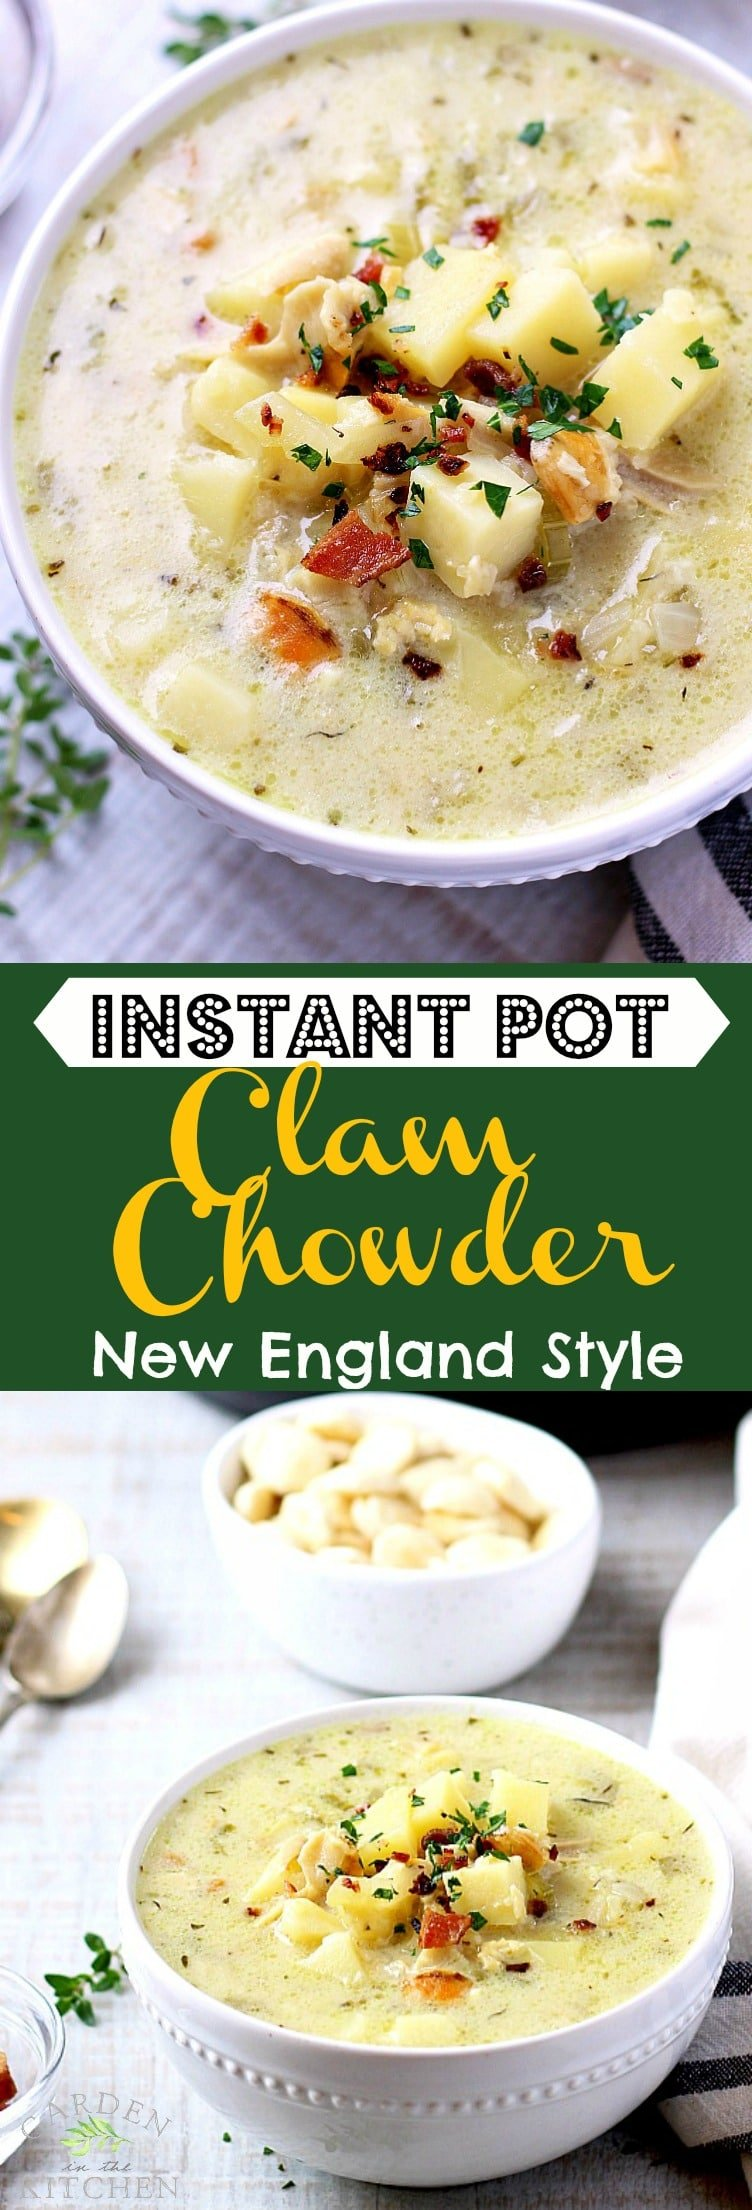 The classic New England Clam Chowder in a lighter form, less creamy but just as flavorful and rich!